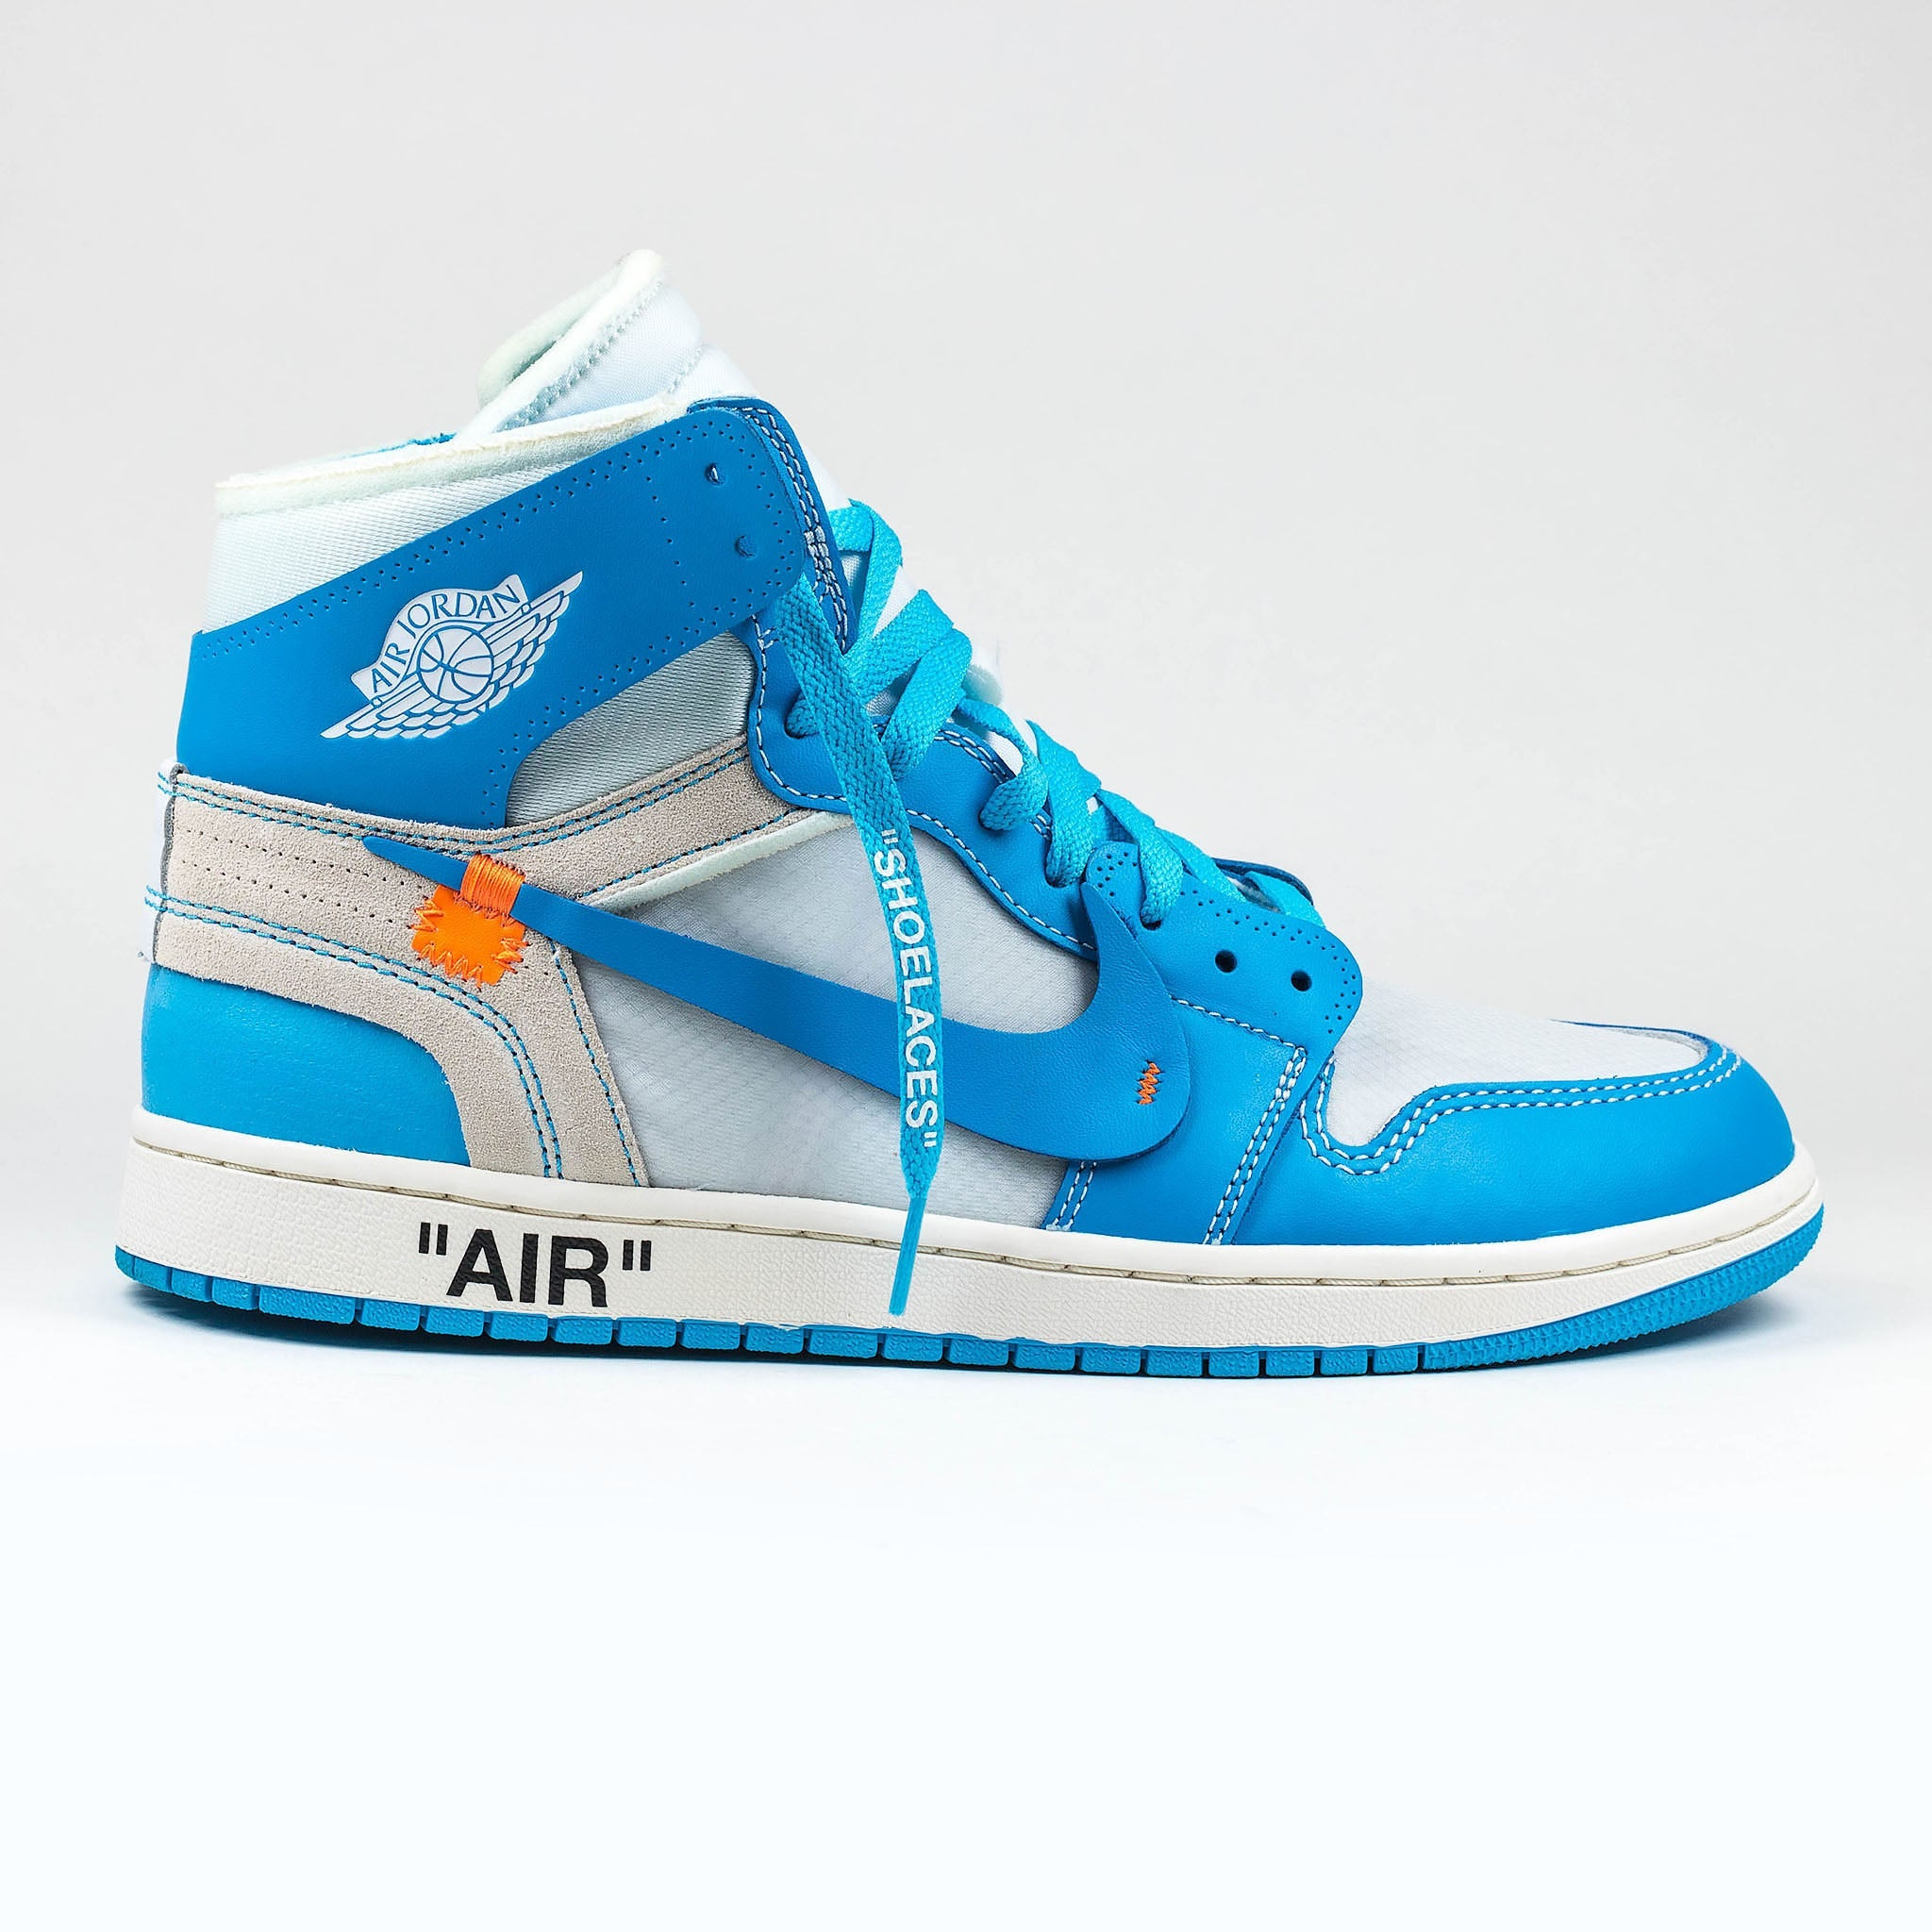 3c5743fec39a Nike x Off White Air Jordan 1 UNC University Blue – Crepslocker